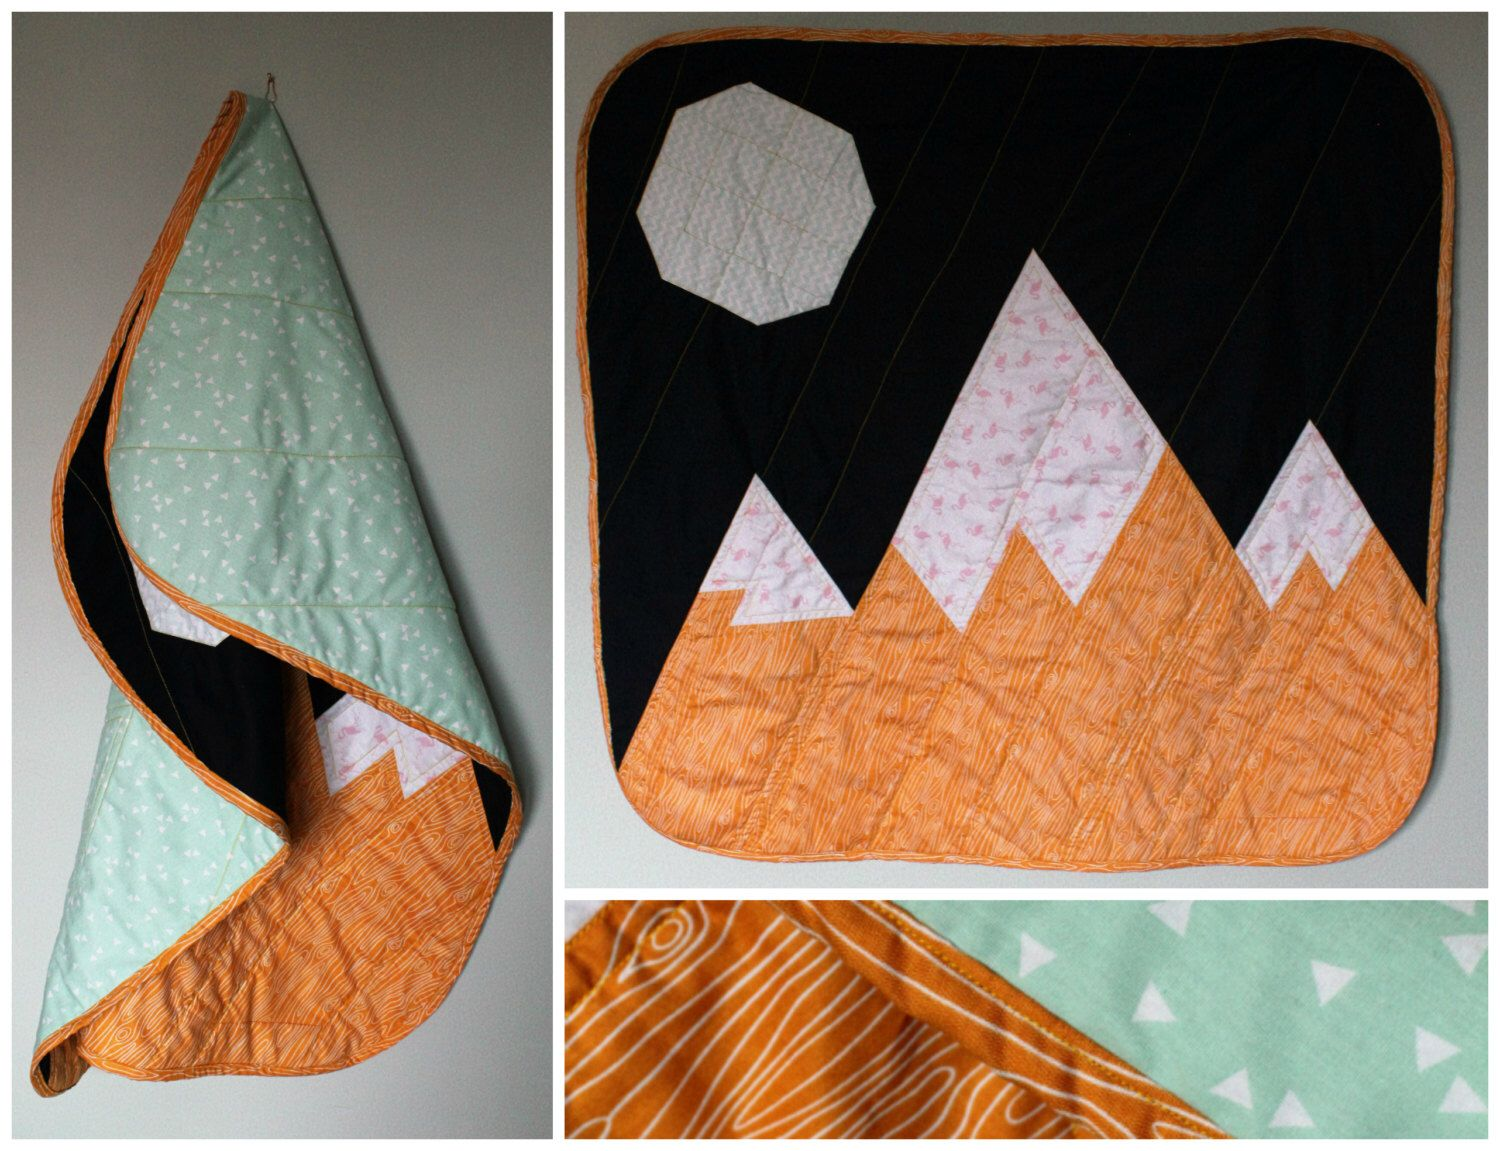 mountain baby play mat handmade quilted travel blanket for a  - mountain baby play mat handmade quilted travel blanket for a modernnursery contemporary gender neutral gift scandi nordic moonlight